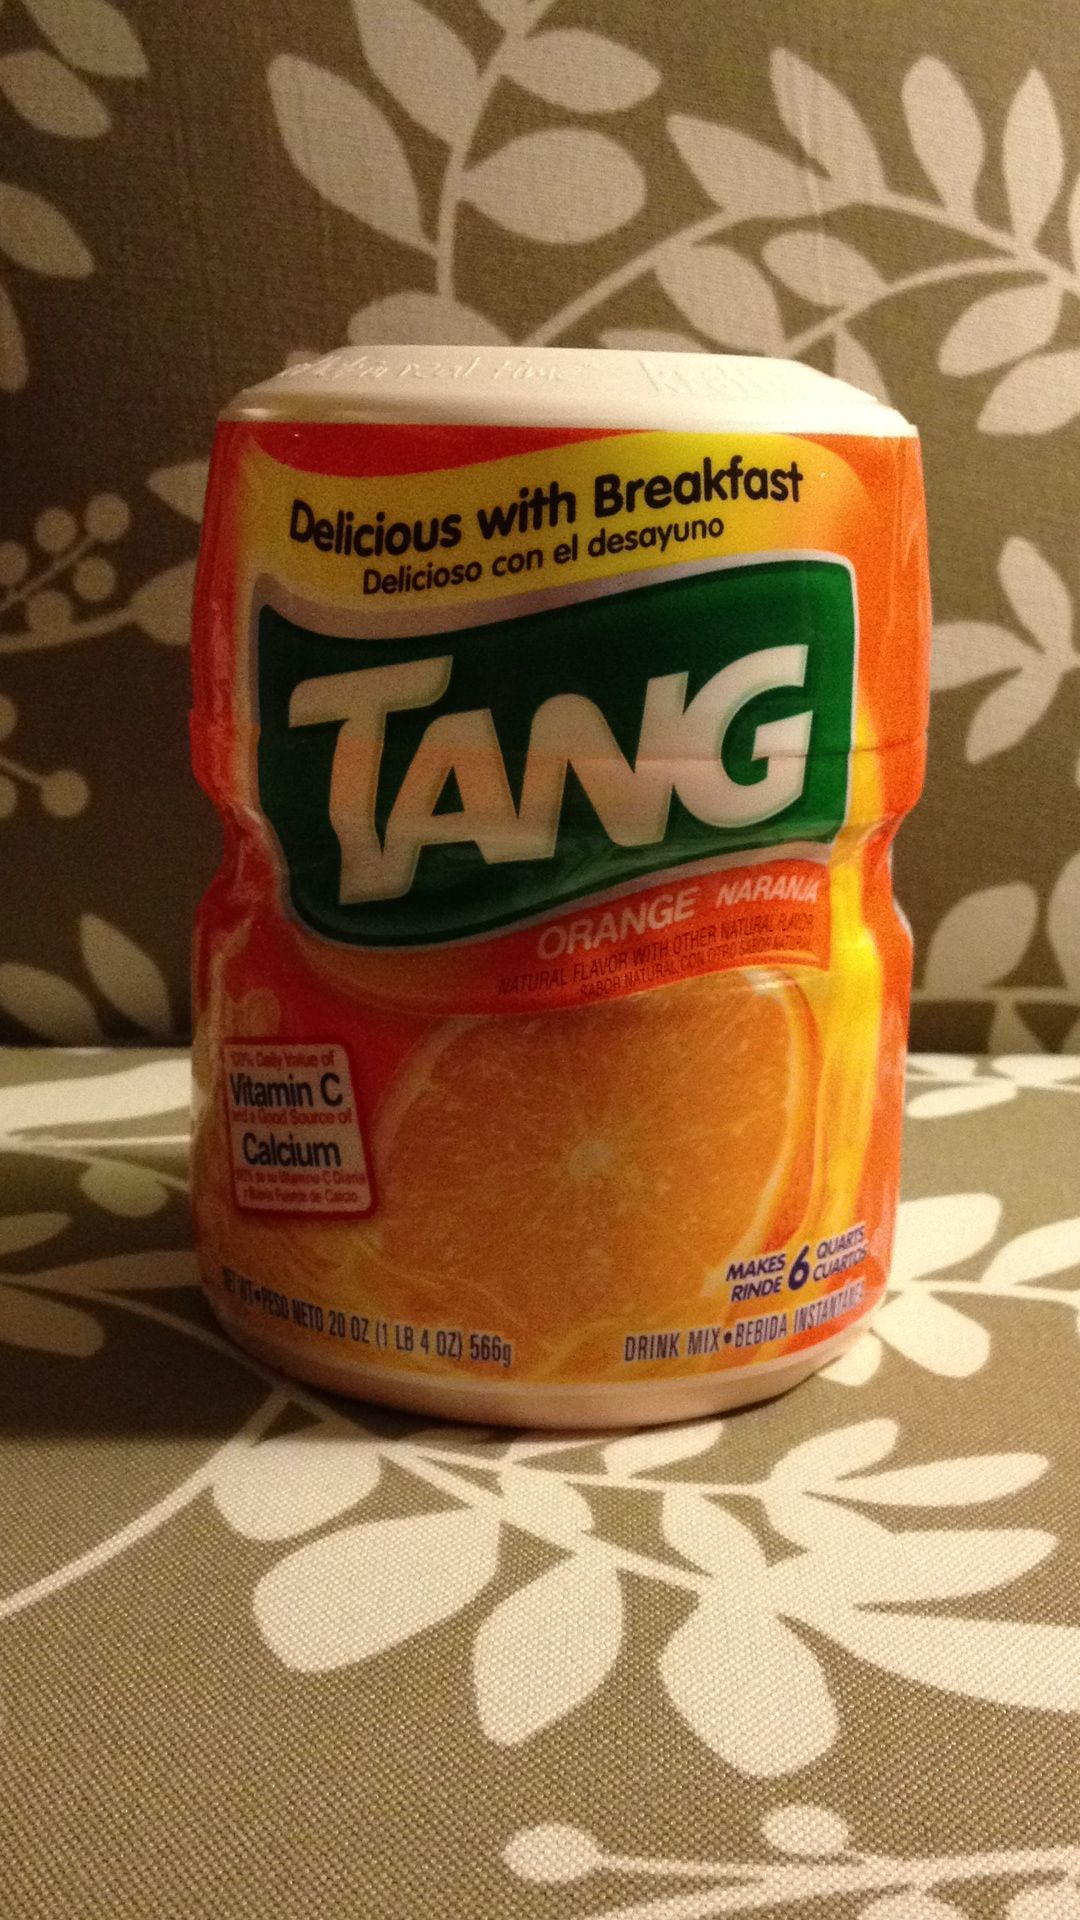 Dishwasher Washing Machine Cleaner Tang Just Add A Scoop Or Two And It Will Remove The Cleaners Homemade Homemade Cleaning Products Washing Machine Cleaner